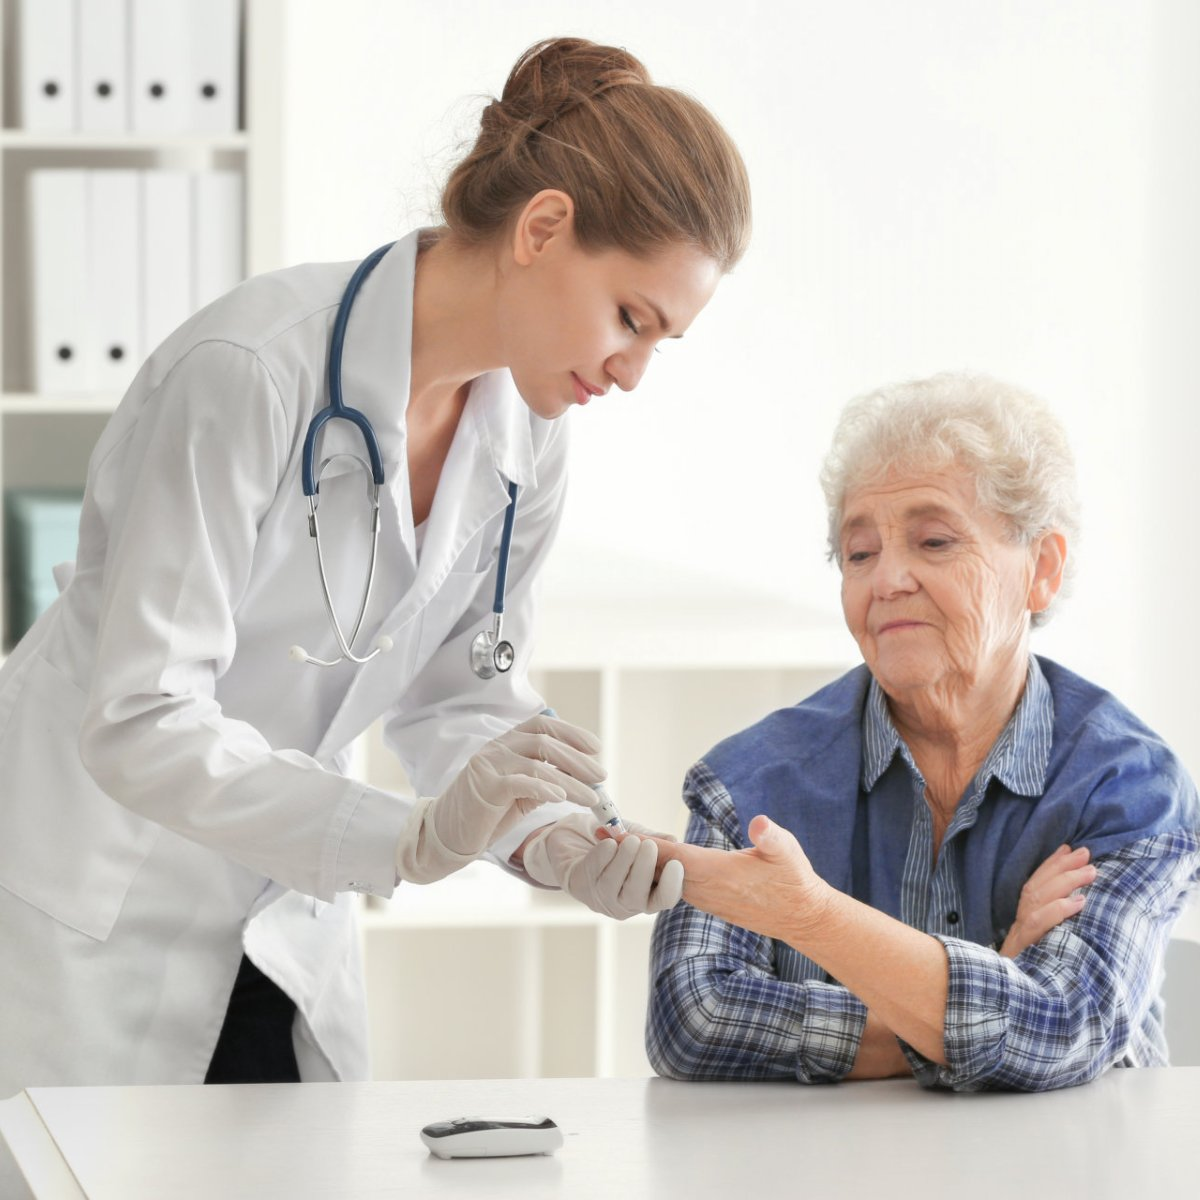 Too Sweet for You!  Diabetes is a common health condition that affects a lot of people, especially in adults.  Read more: https://www.instagram.com/p/Bz-ECrYAakD/  #Diabetes #SeniorCare